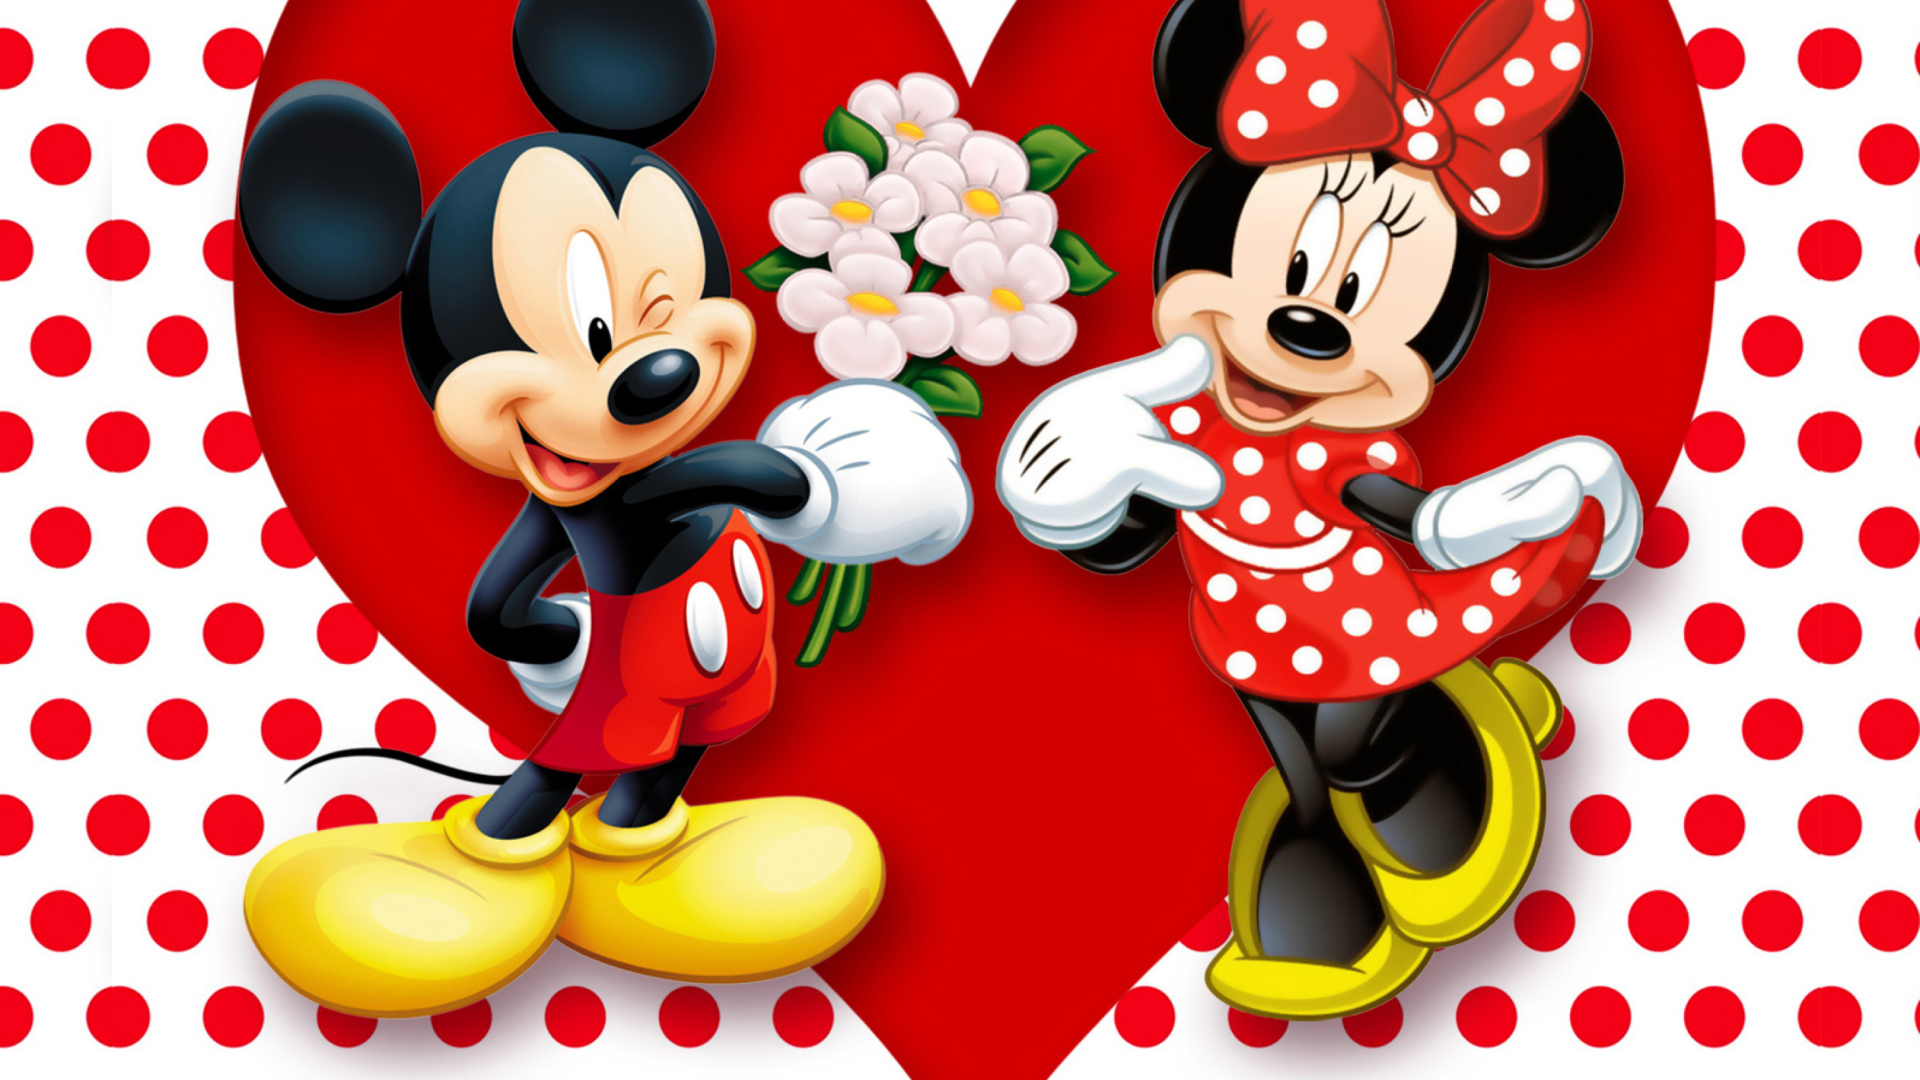 Mickey-And-Minnie-Mouse-High-Quality-Resolution-wallpaper-wp3408592